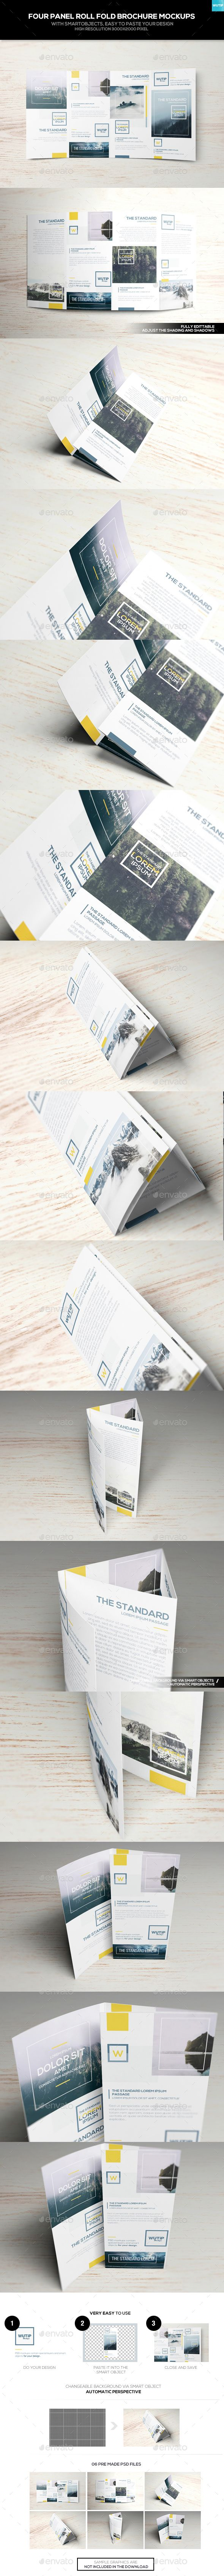 Four Panel Roll Fold Brochure Mockups. Download here: https://graphicriver.net/item/four-panel-roll-fold-brochure-mockups/17374690?ref=ksioks